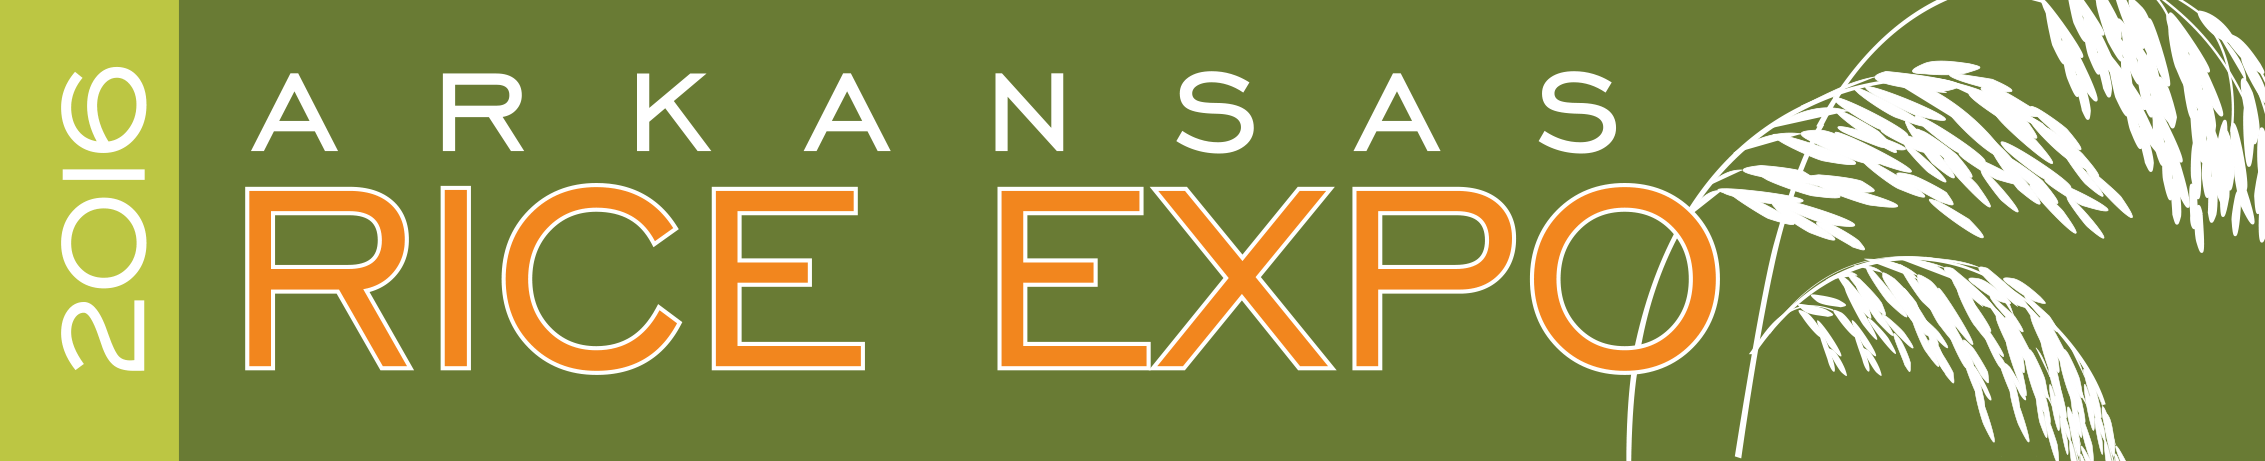 2016 Rice Expo Logo